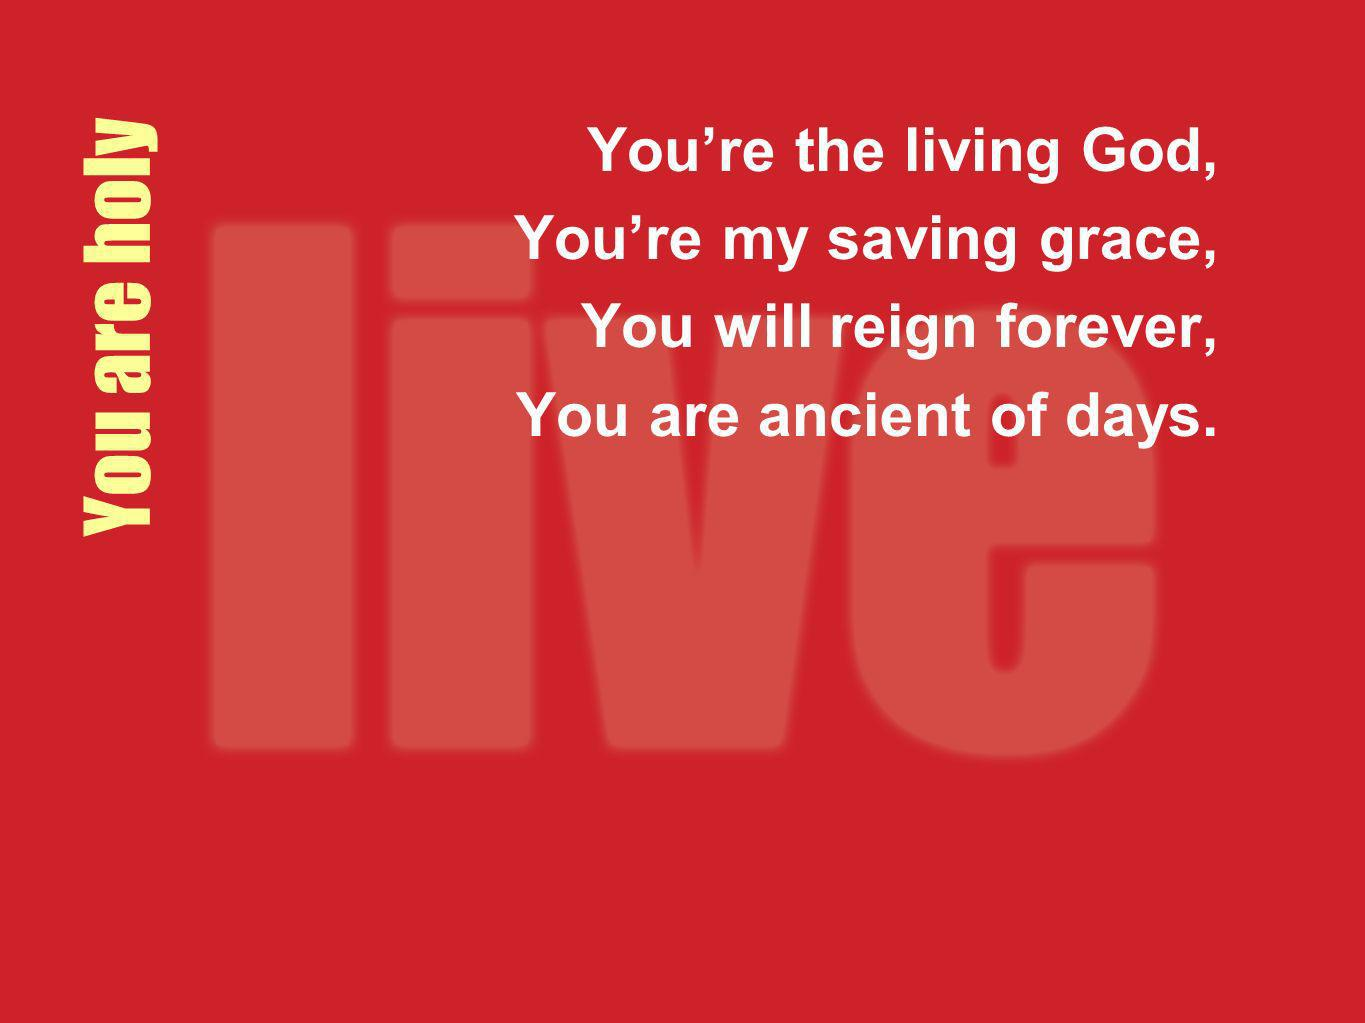 You are holy Youre the living God, Youre my saving grace, You will reign forever, You are ancient of days.